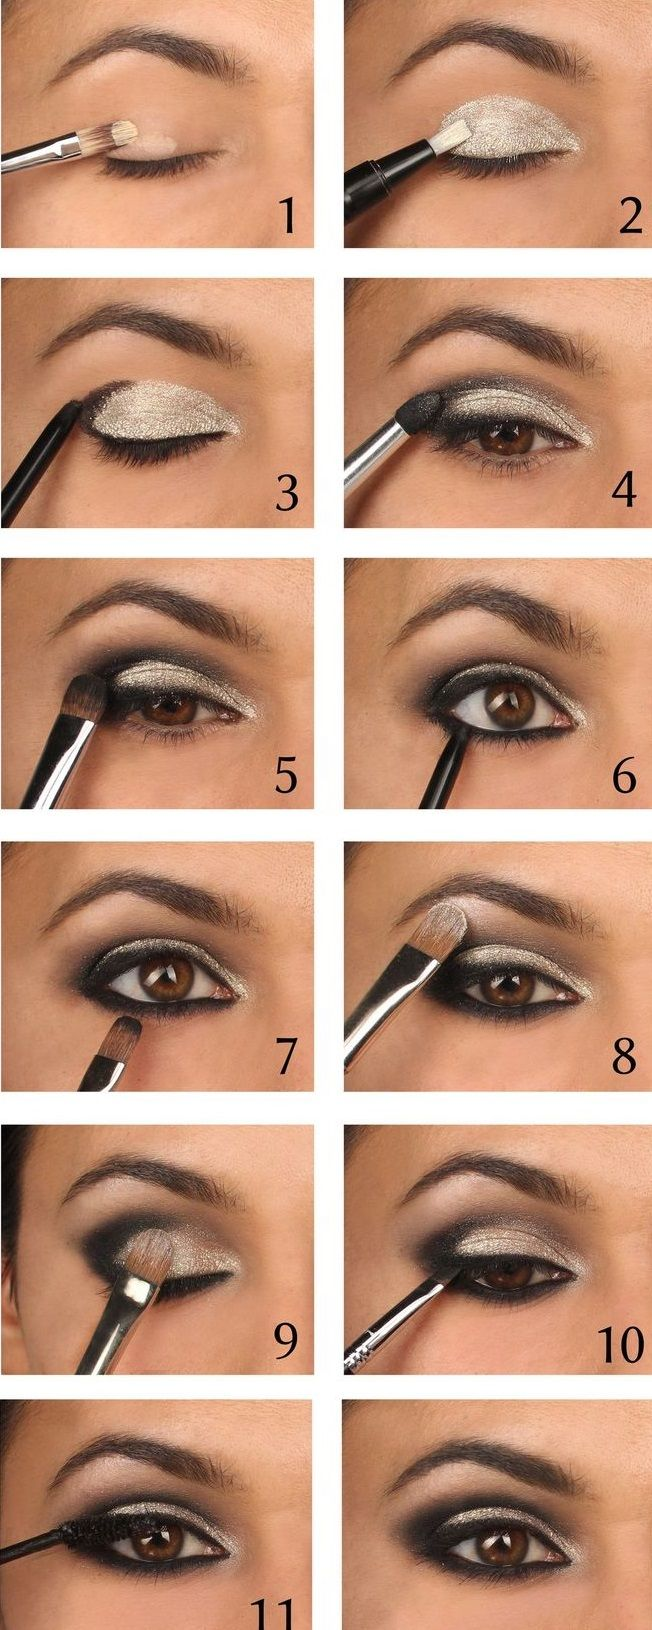 25 easy step by step makeup tutorials for teens | the eyes